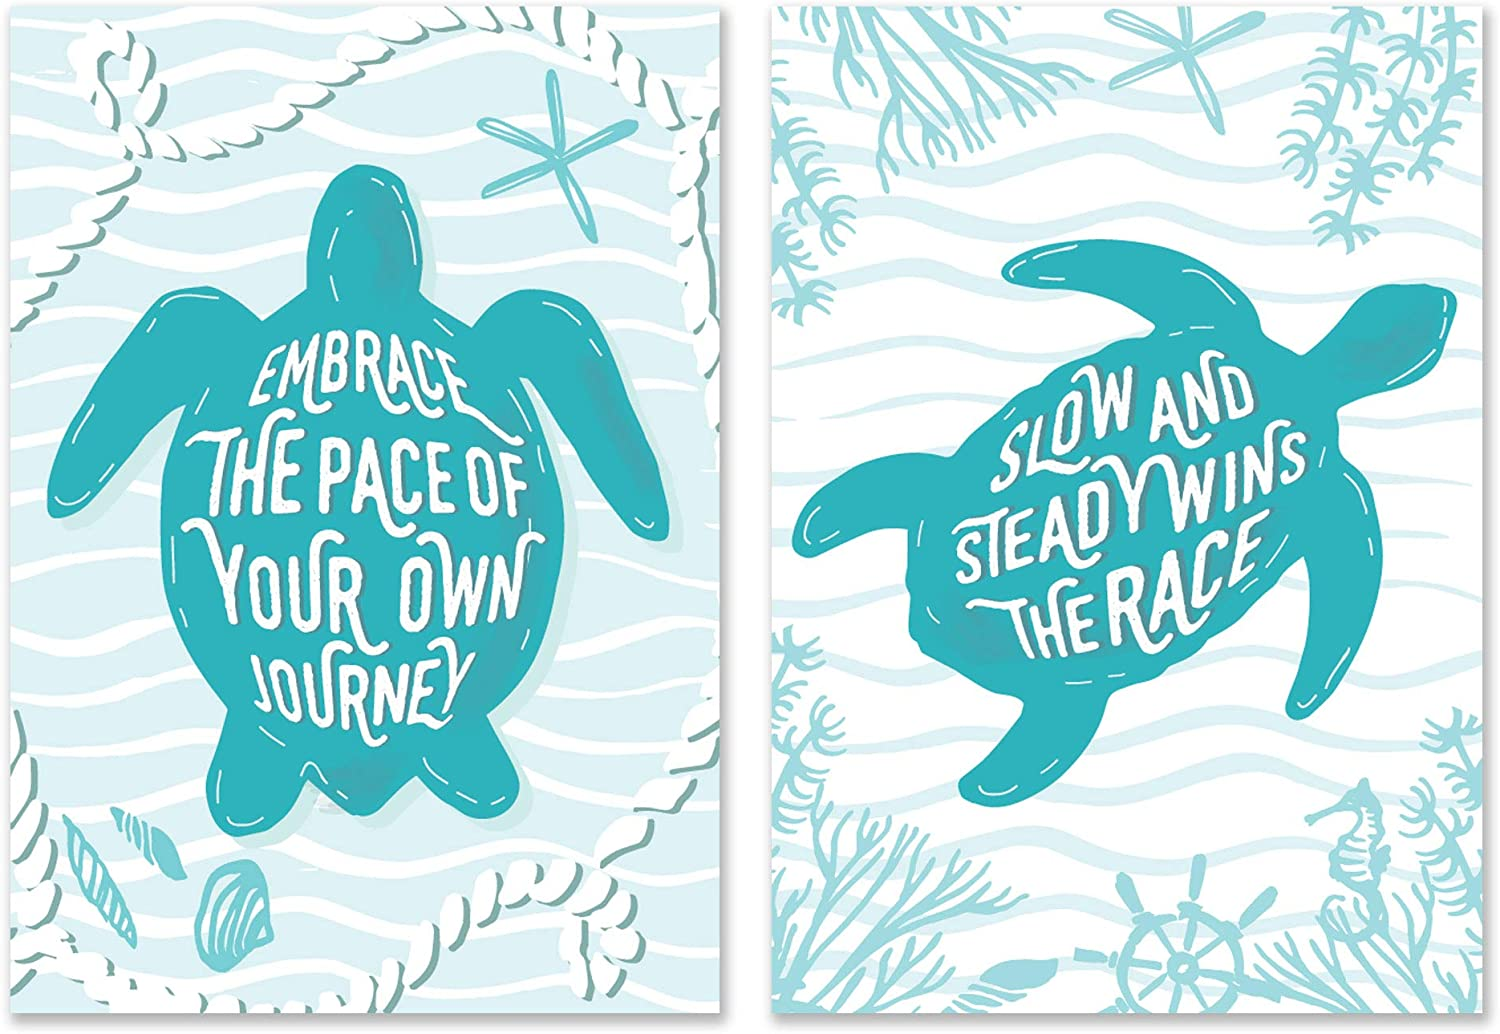 SCENE: YOURSELF Sea Turtle Decor, Sea Turtle Bathroom Decor, Turtle Wall Decor, Turquoise Wall Art, Sea Turtle Gifts, 11.7 x 16.5, Unframed, Paper, Matte Lamination, Set of 2 Posters, Turquoise